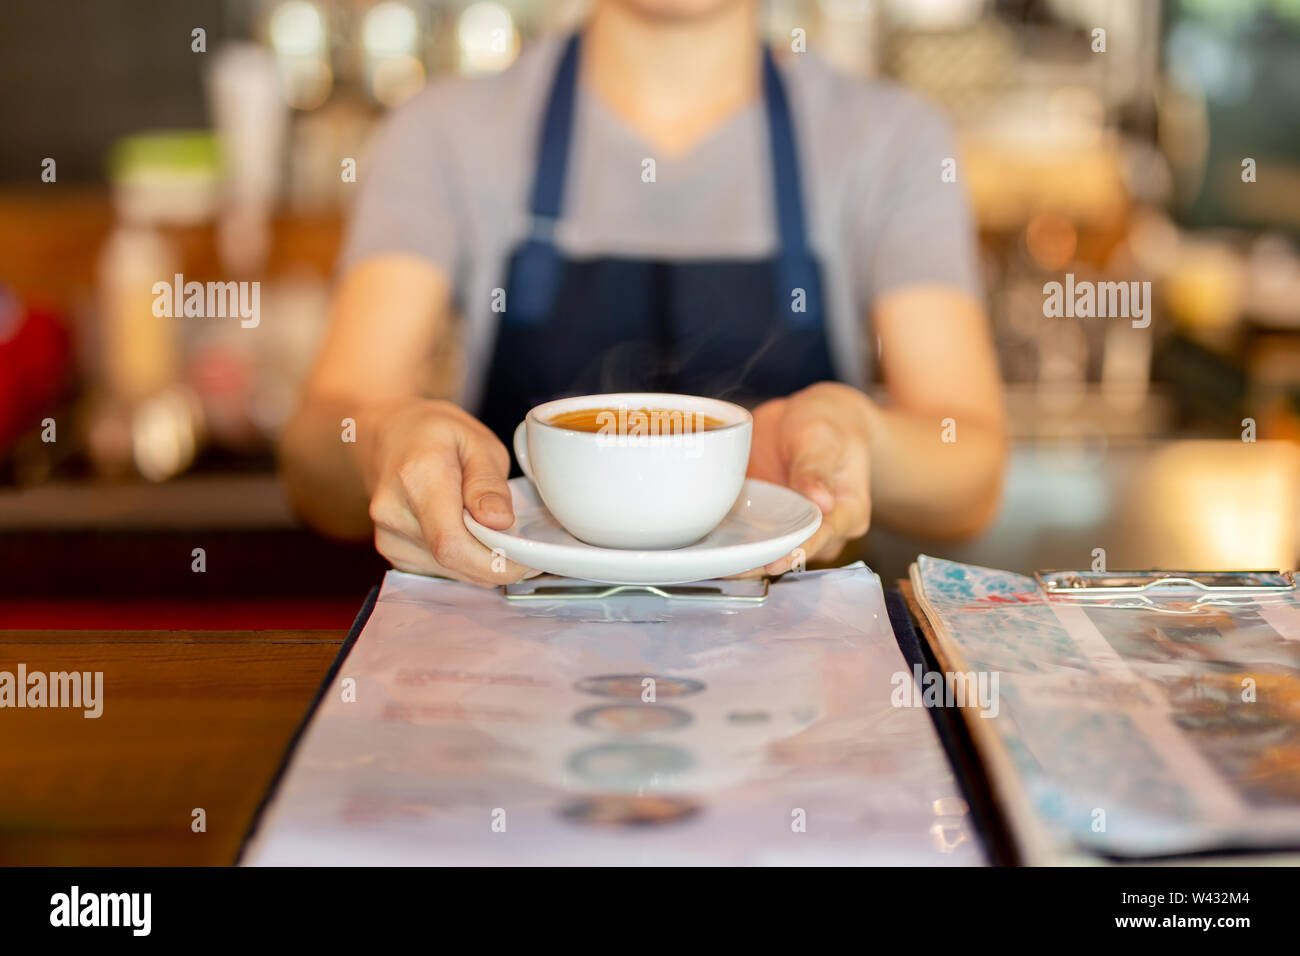 Waitress serving coffee while standing in coffee shop counter. - Stock Image